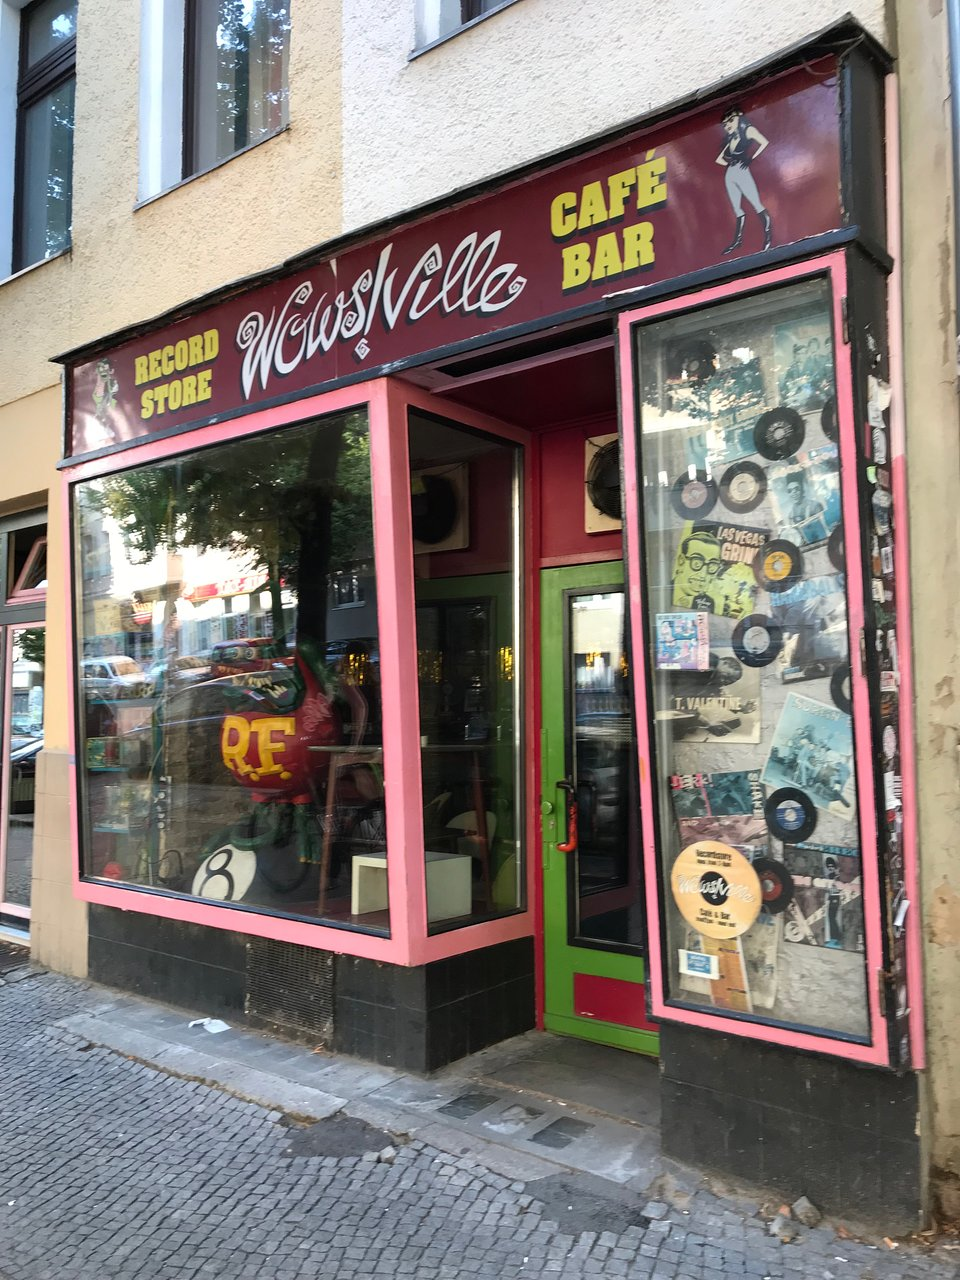 Wowsville Berlin 2019 All You Need To Know Before You